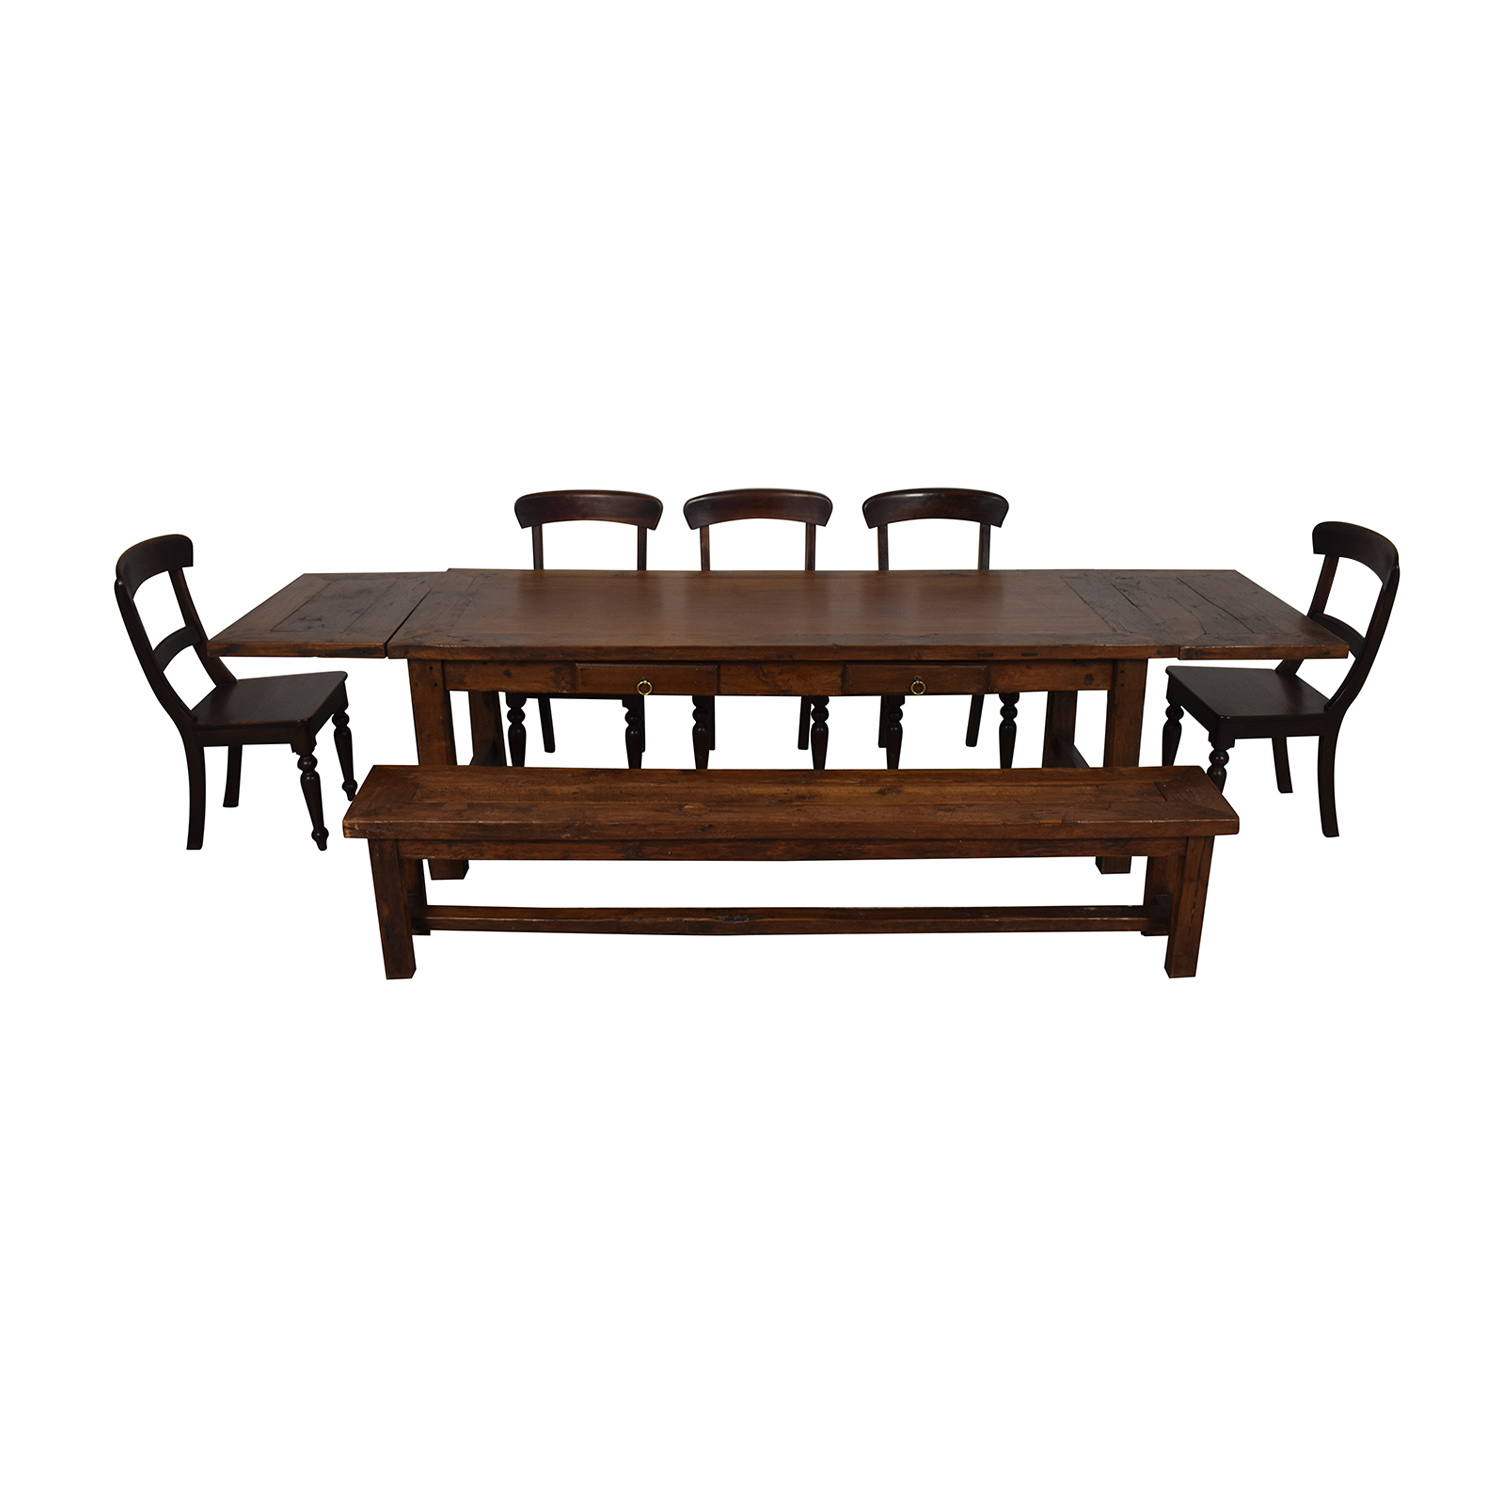 Crate & Barrel Extendable Dining Set with Bench sale